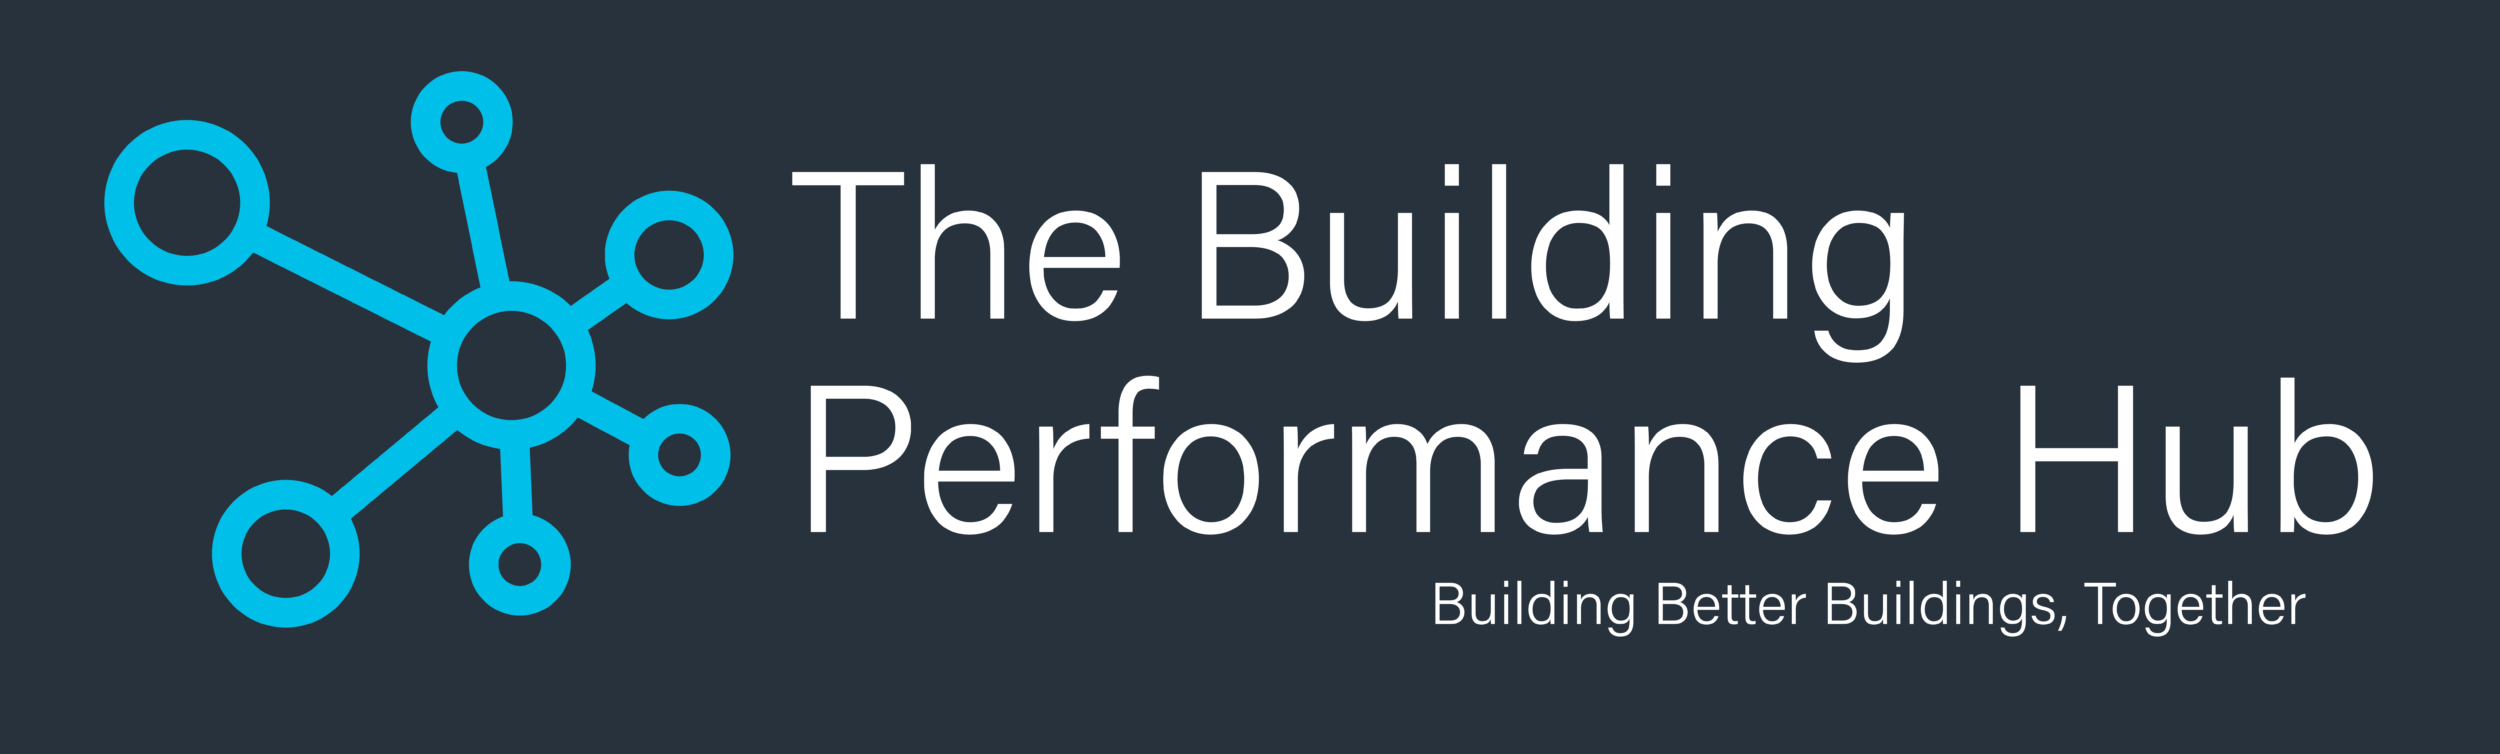 The Building Performance Hub Logo